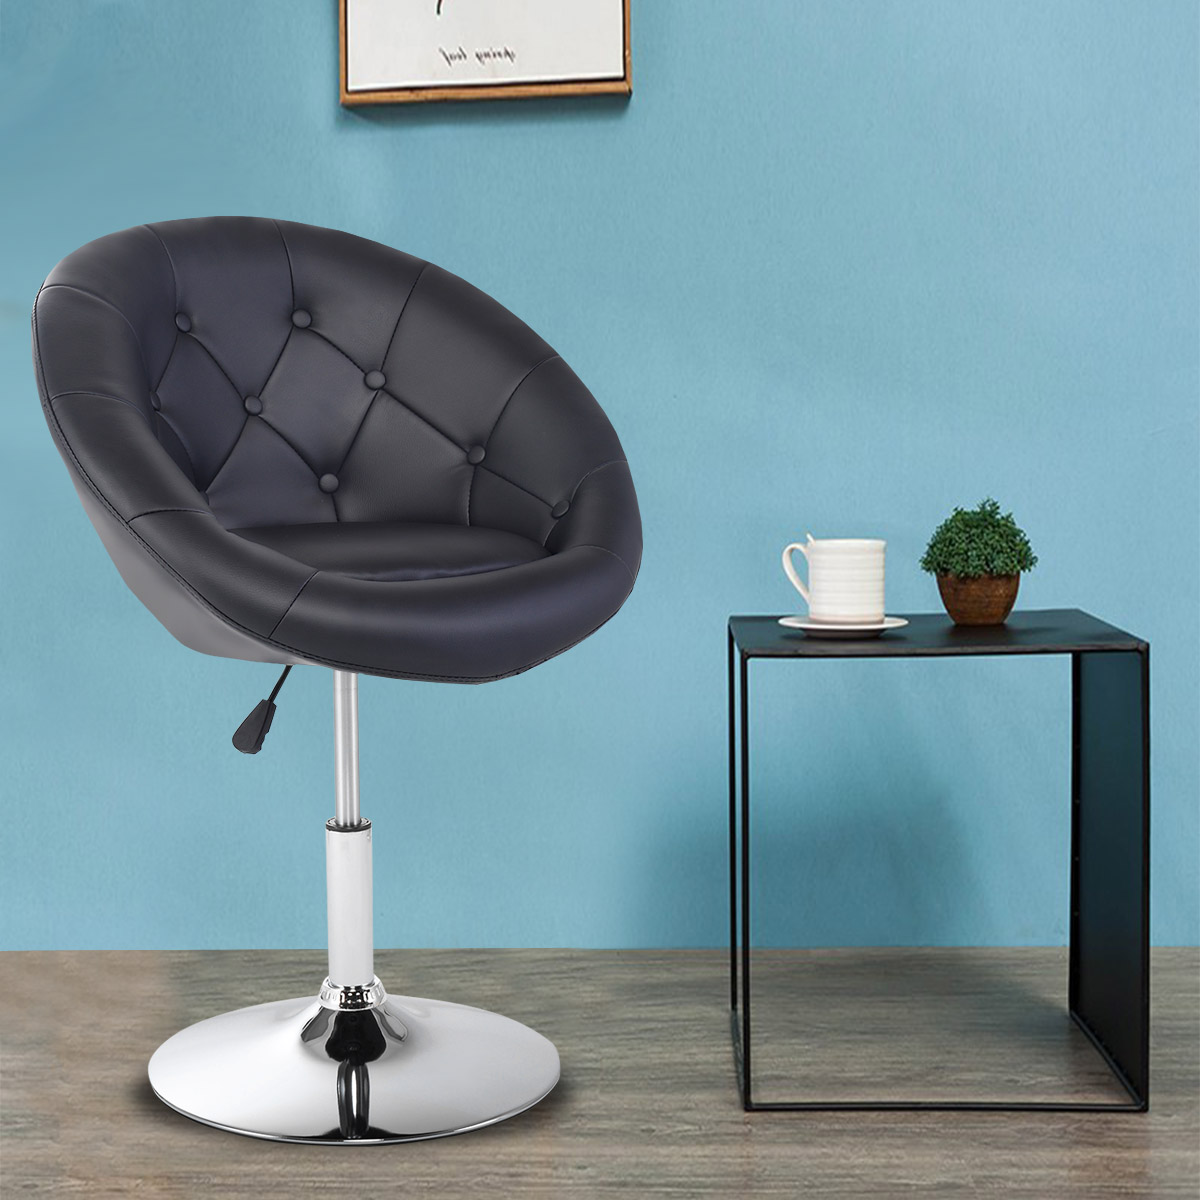 Gymax PU Leather Adjustable Modern Chair Swivel Round Tufted Back Black